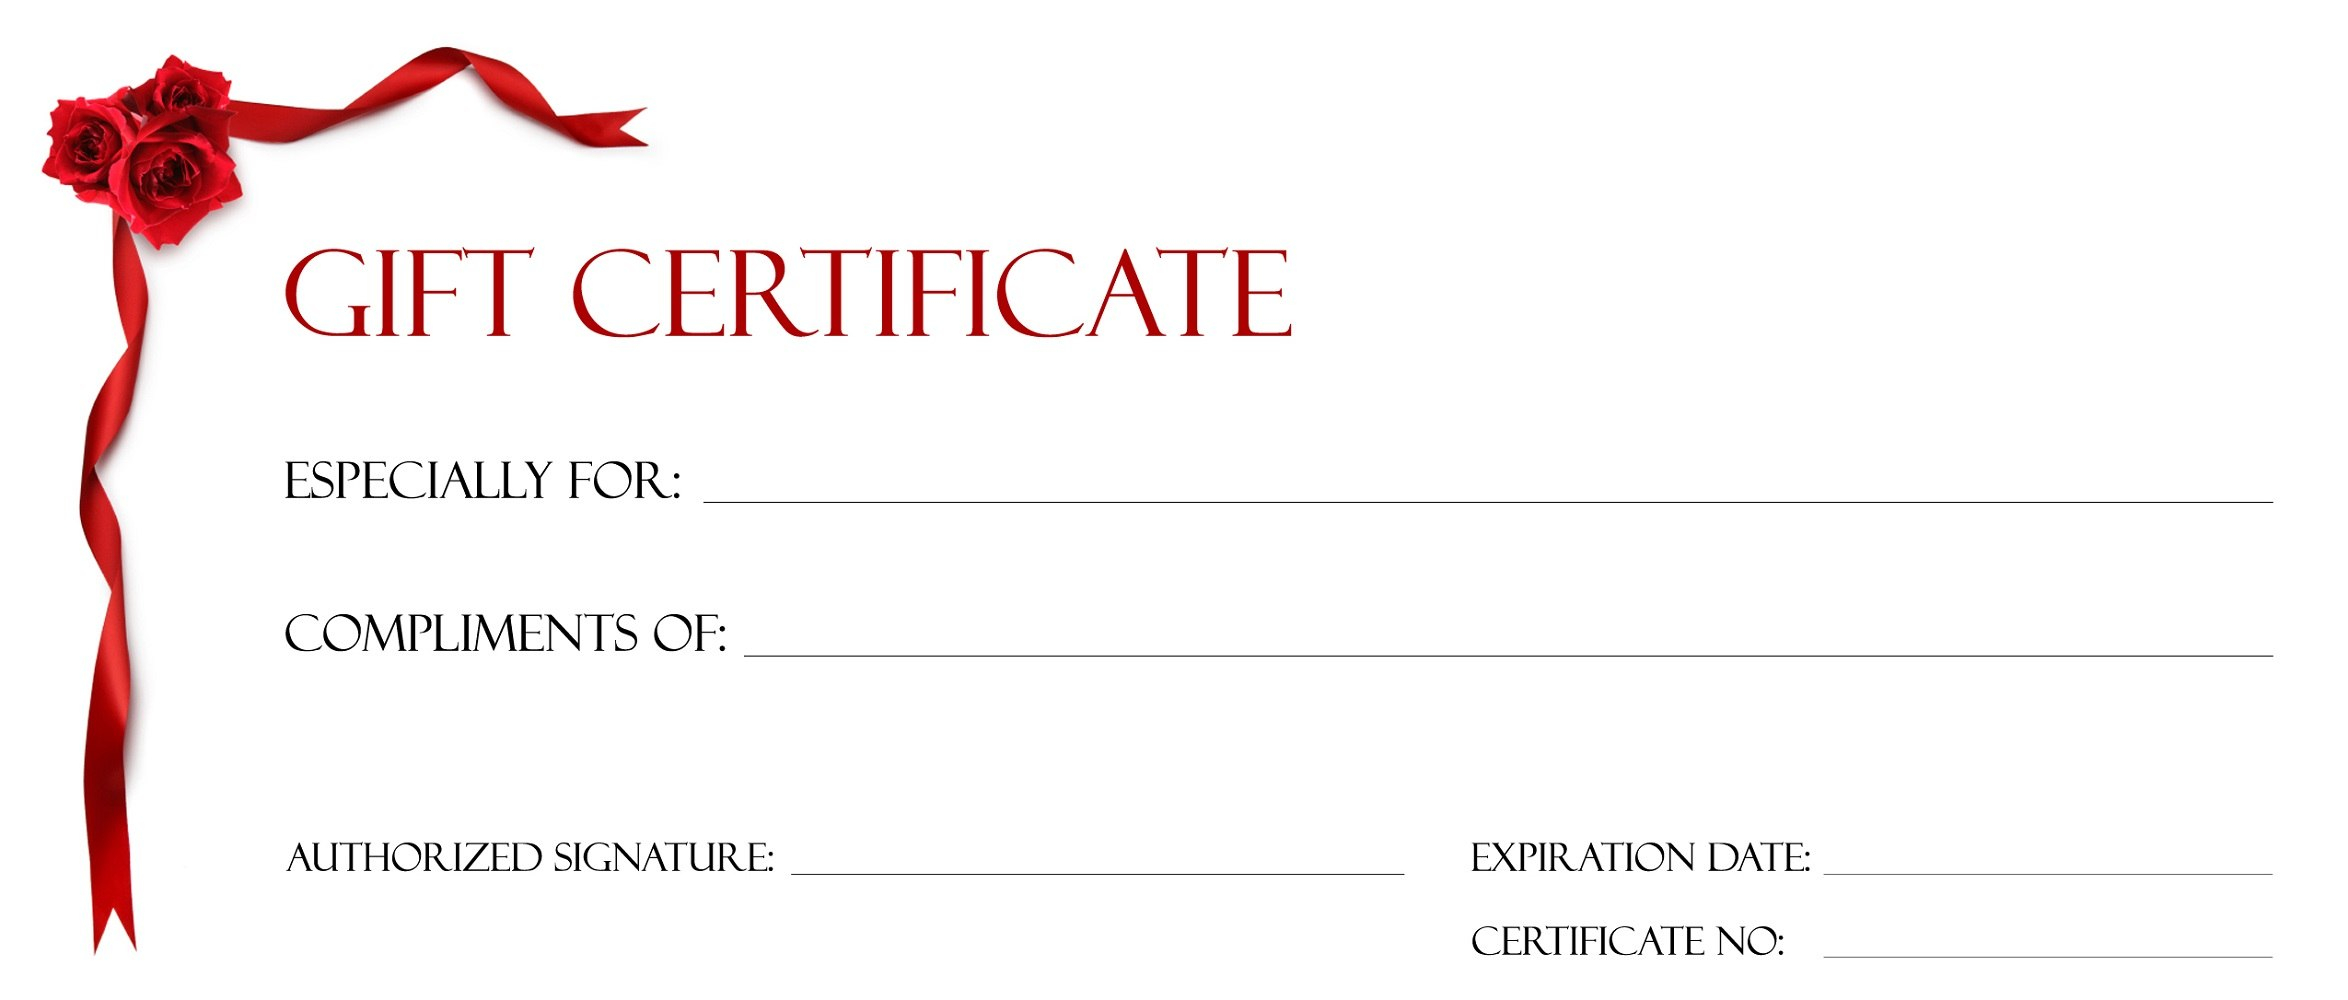 Gift Certificate Templates To Print  Activity Shelter With Regard To Printable Gift Certificates Templates Free